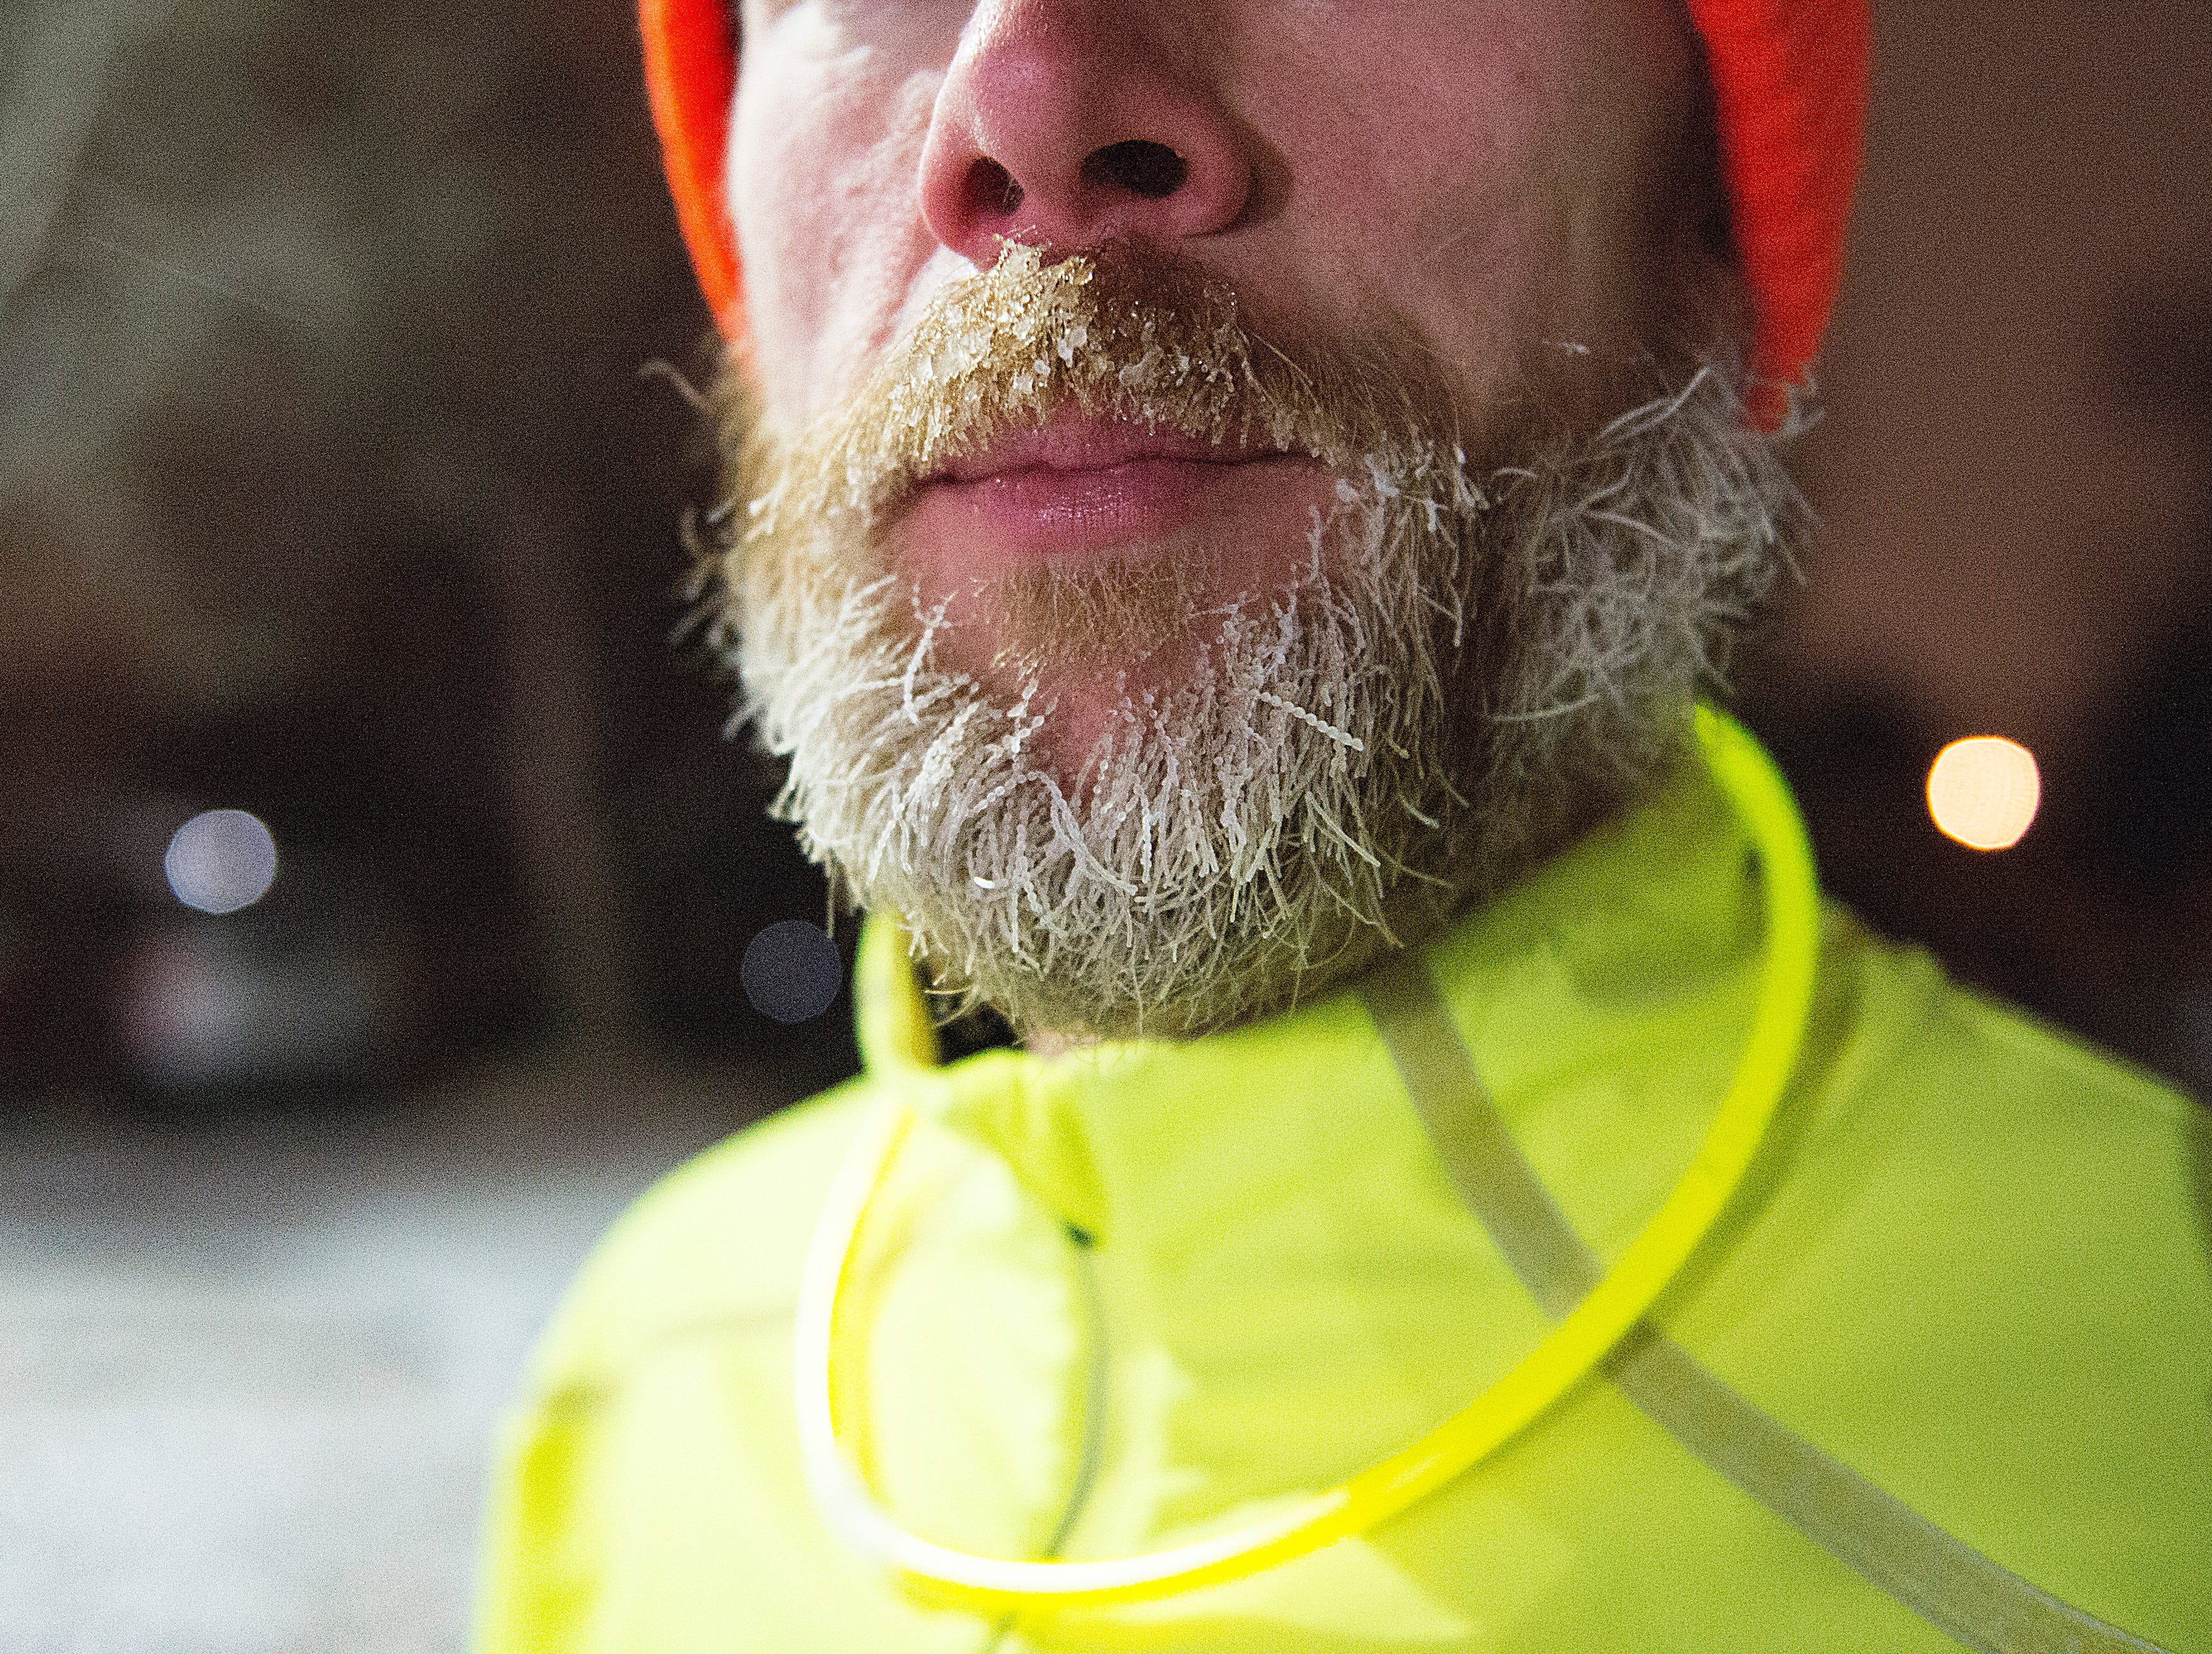 Frost forms on race winner Stephen Pretak's beard at the finish line for the Resolution Run 5K at Our Saviour's Lutheran Church on December 31, 2018. People braved single-digit temperatures to ring in the new year with the run.